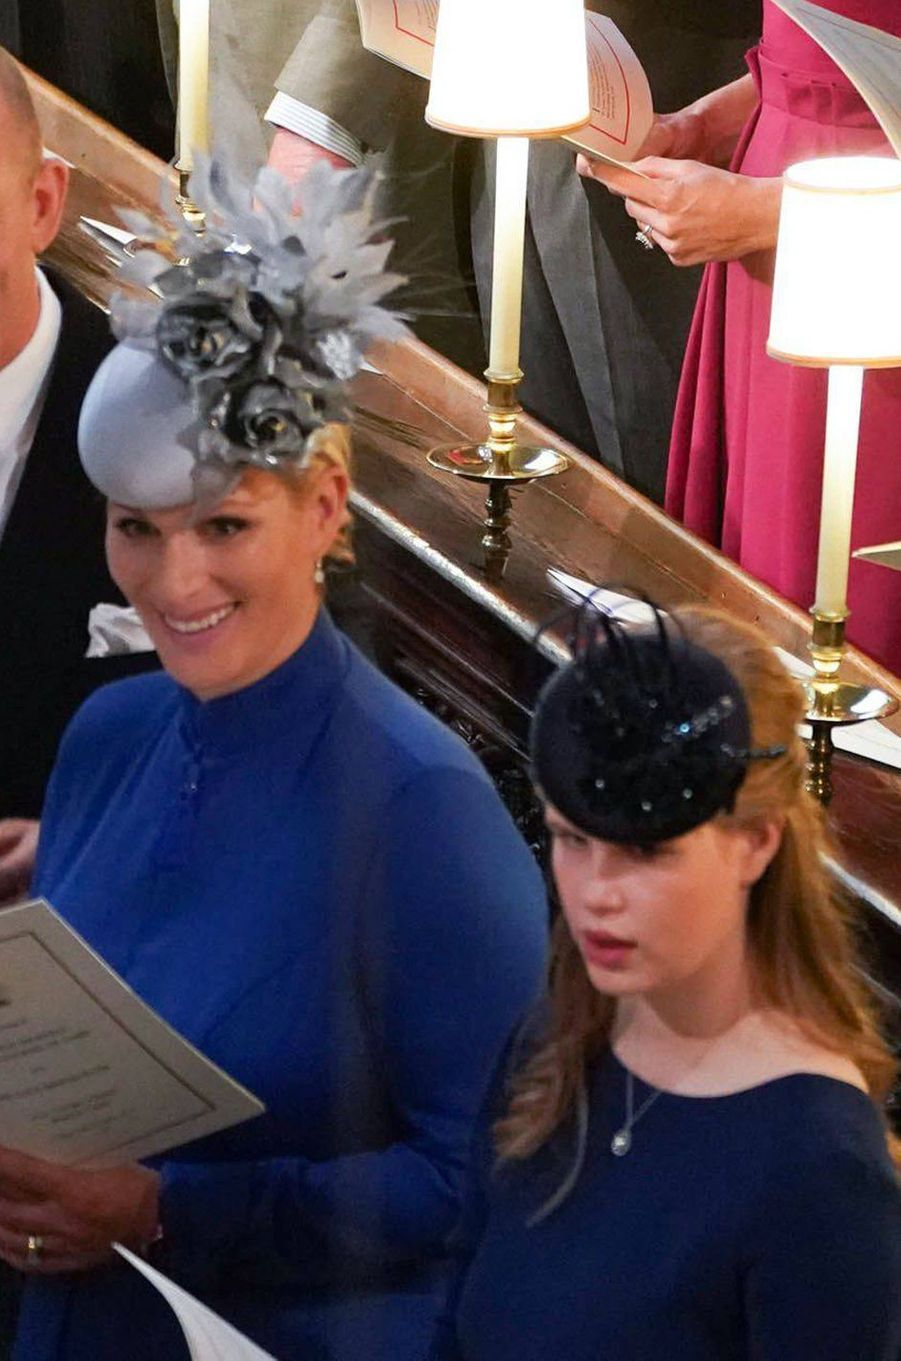 Zara Phillips-Tindall et Lady Louise Windsor à Windsor, le 12 octobre 2018